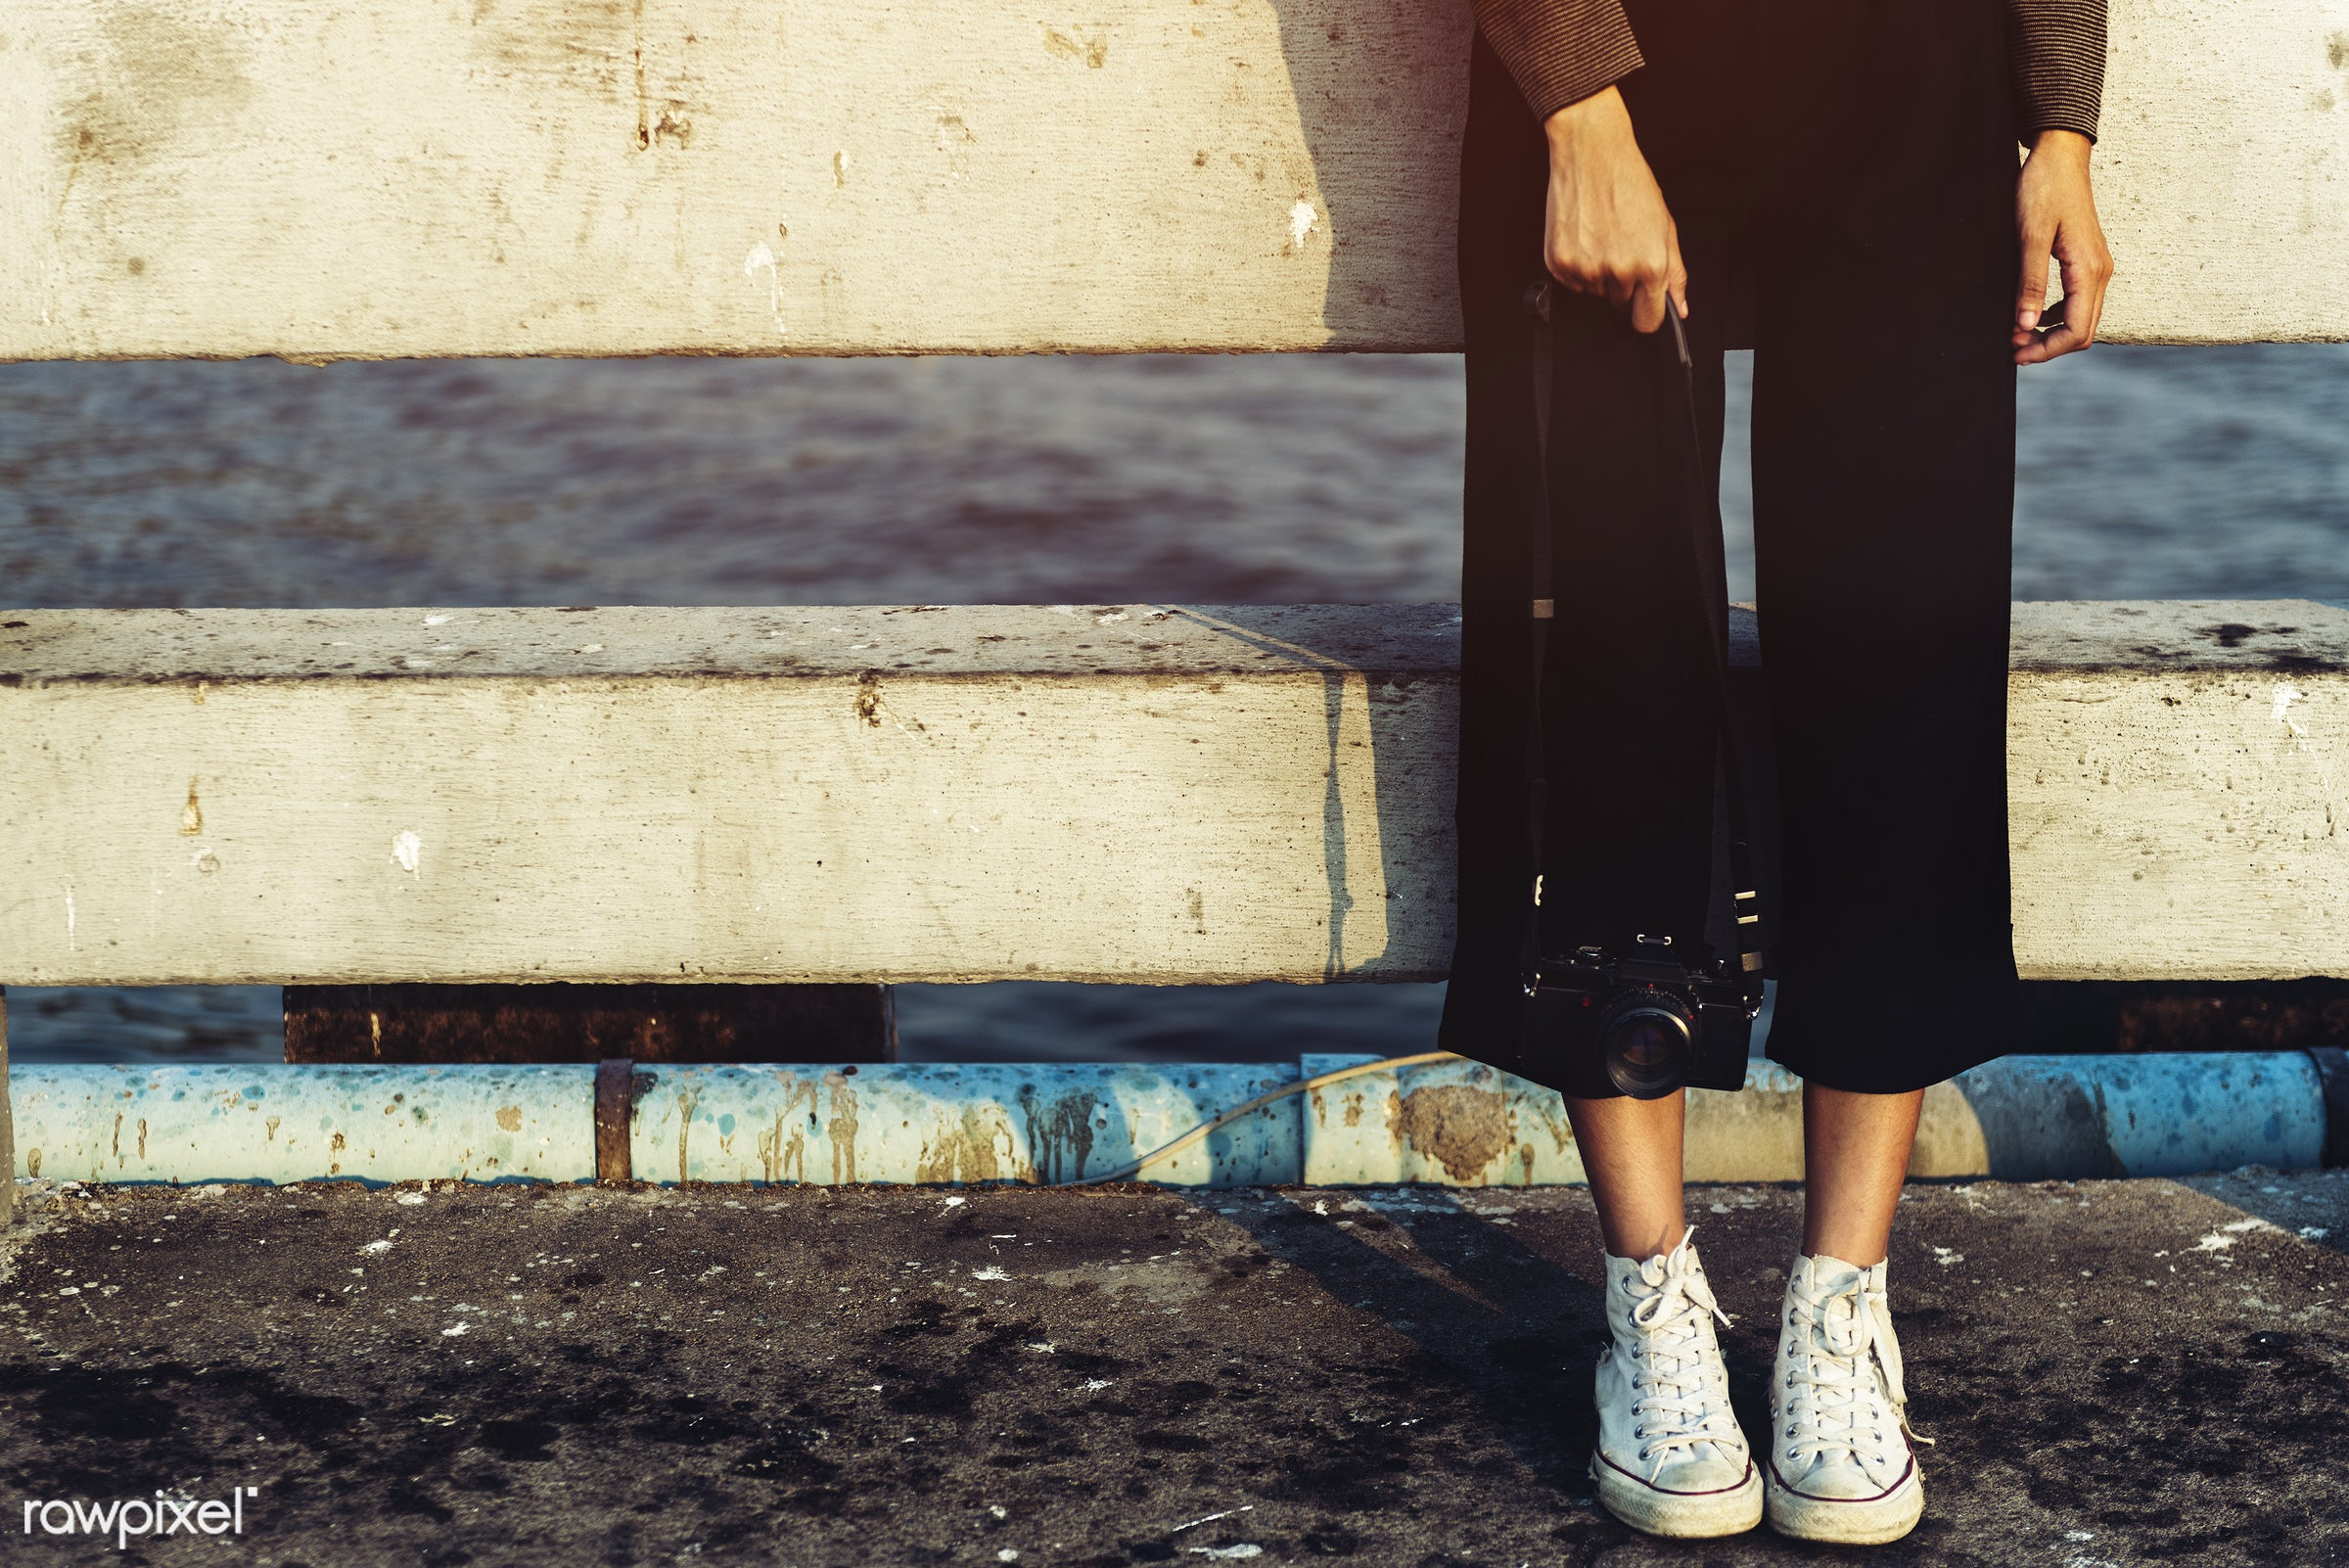 Woman's legs standing holding a camera - legs, feet, standing, shoes, casual, outdoors, alone, solitude, camera, leisure,...